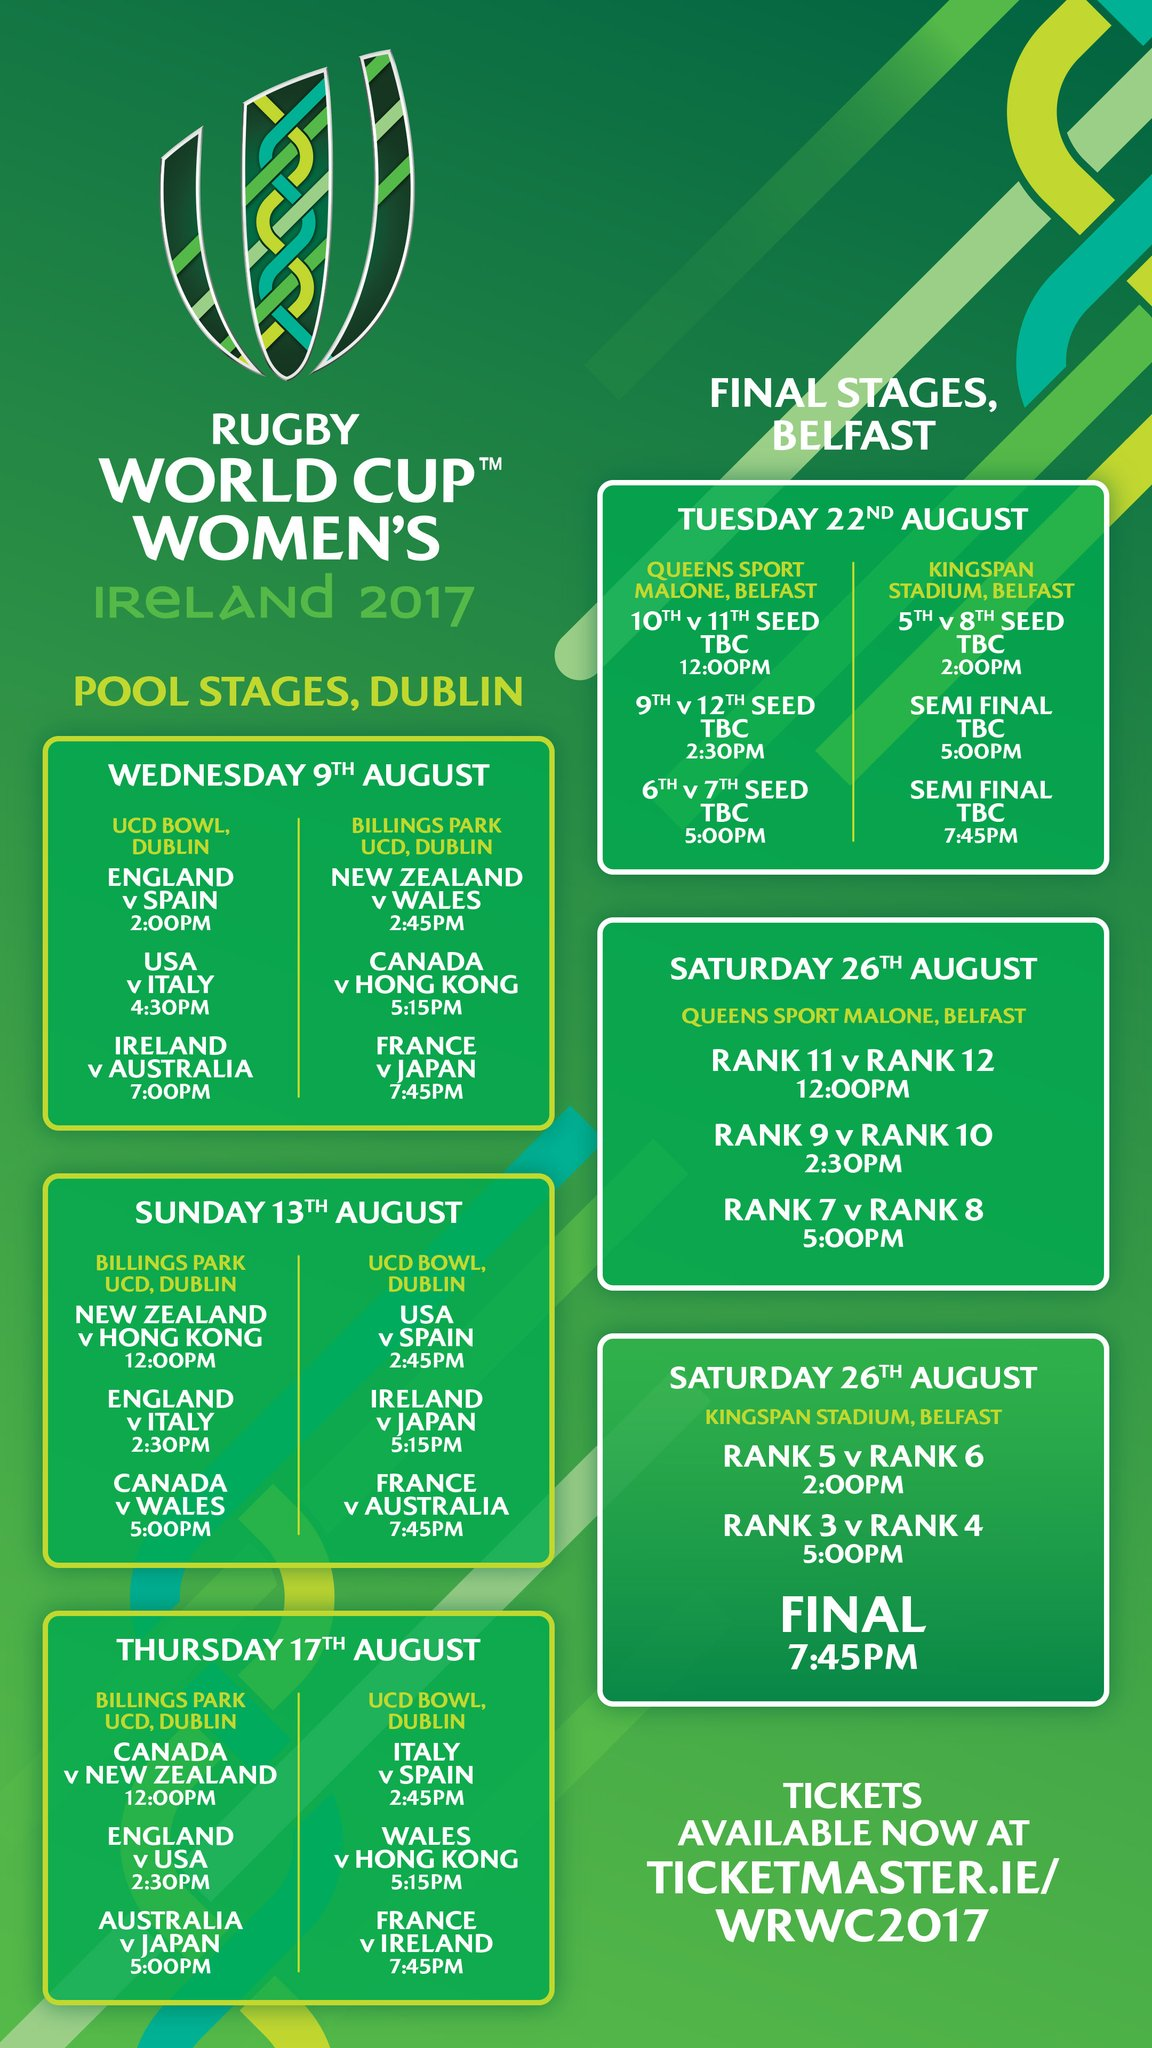 rugby world cup schedule - photo #20